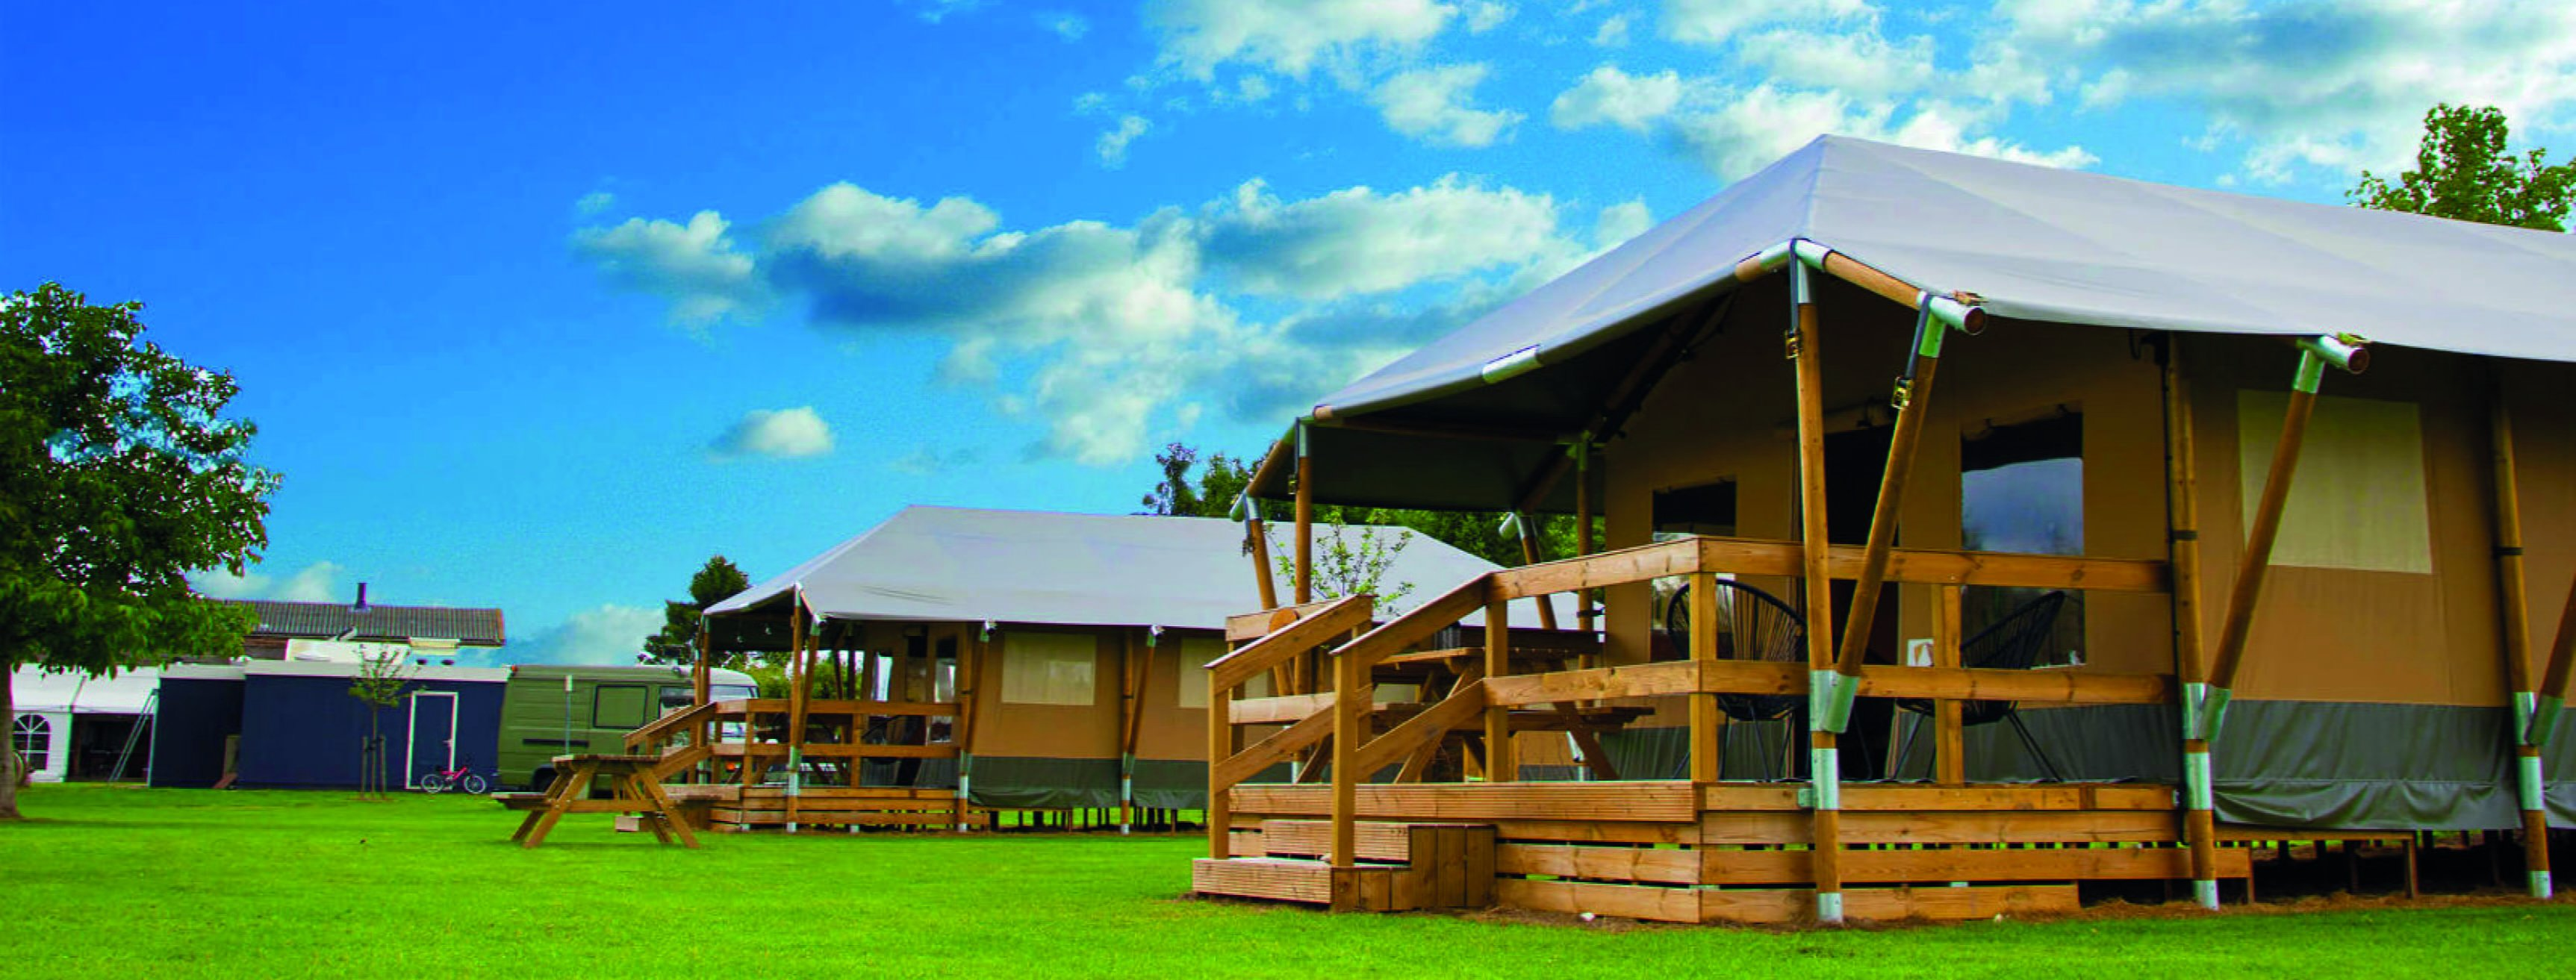 Outstanding Safari Tent Lodges Recreatie Vakbeurs